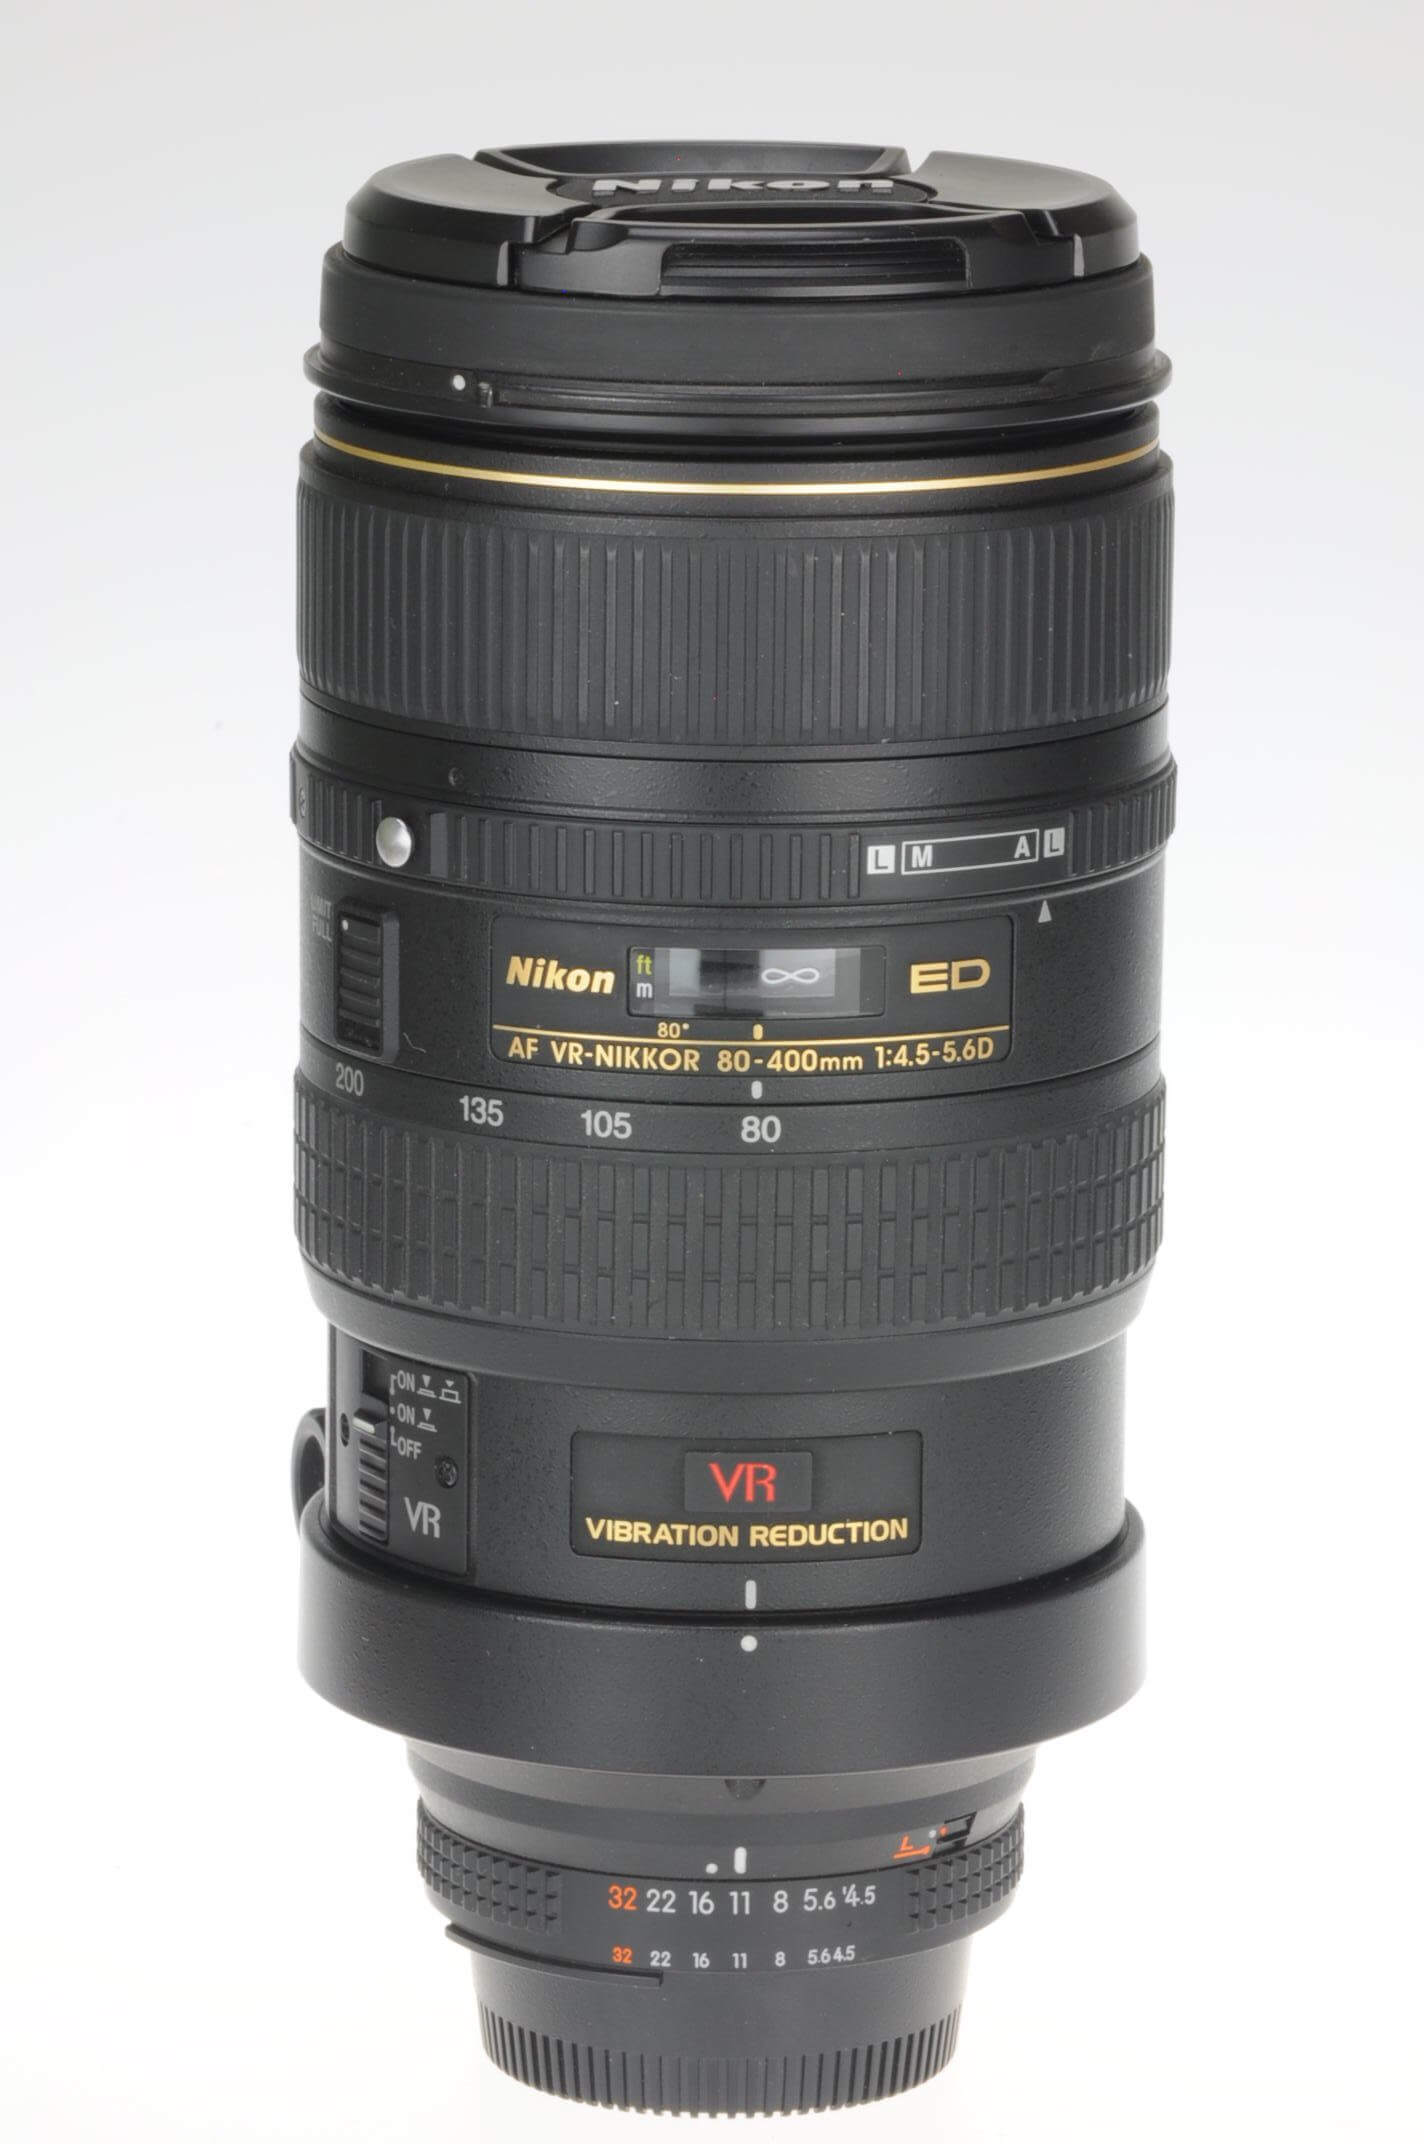 Nikon 80-400mm f4.5-5.6 AF D VR, boxed, stunning condition!